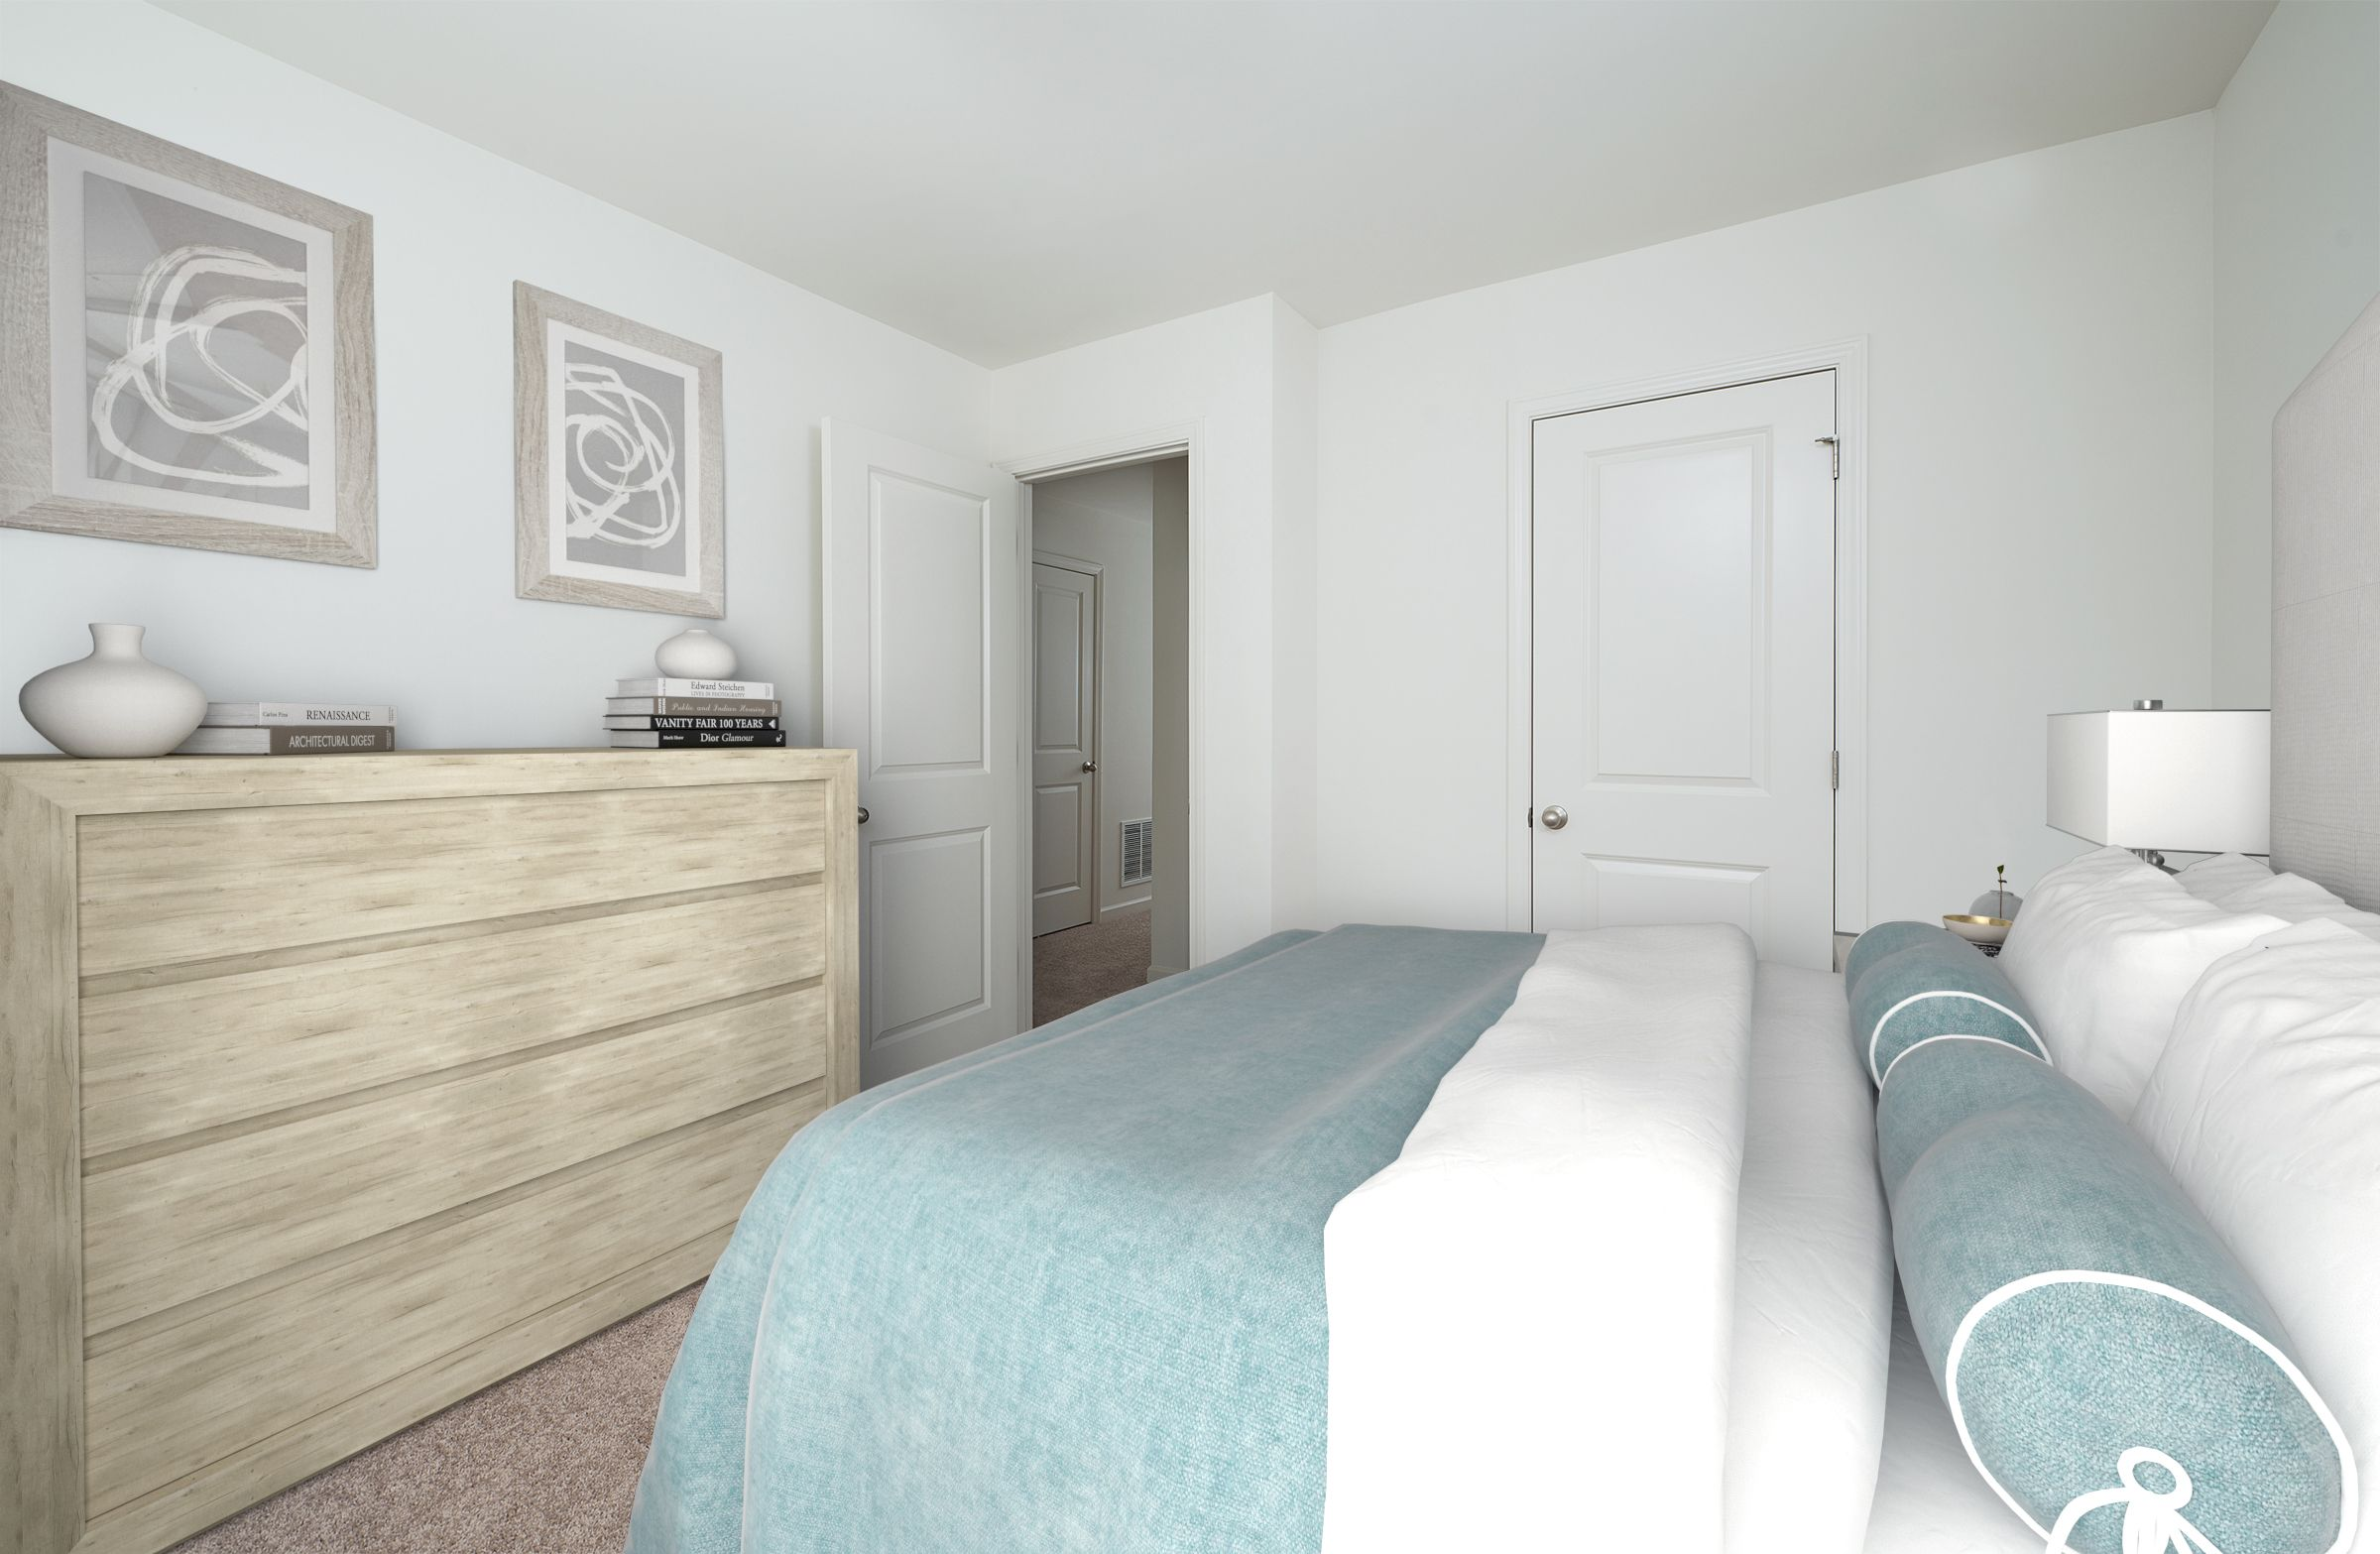 Bedroom featured in the Cosmos By Starlight Homes in Atlanta, GA